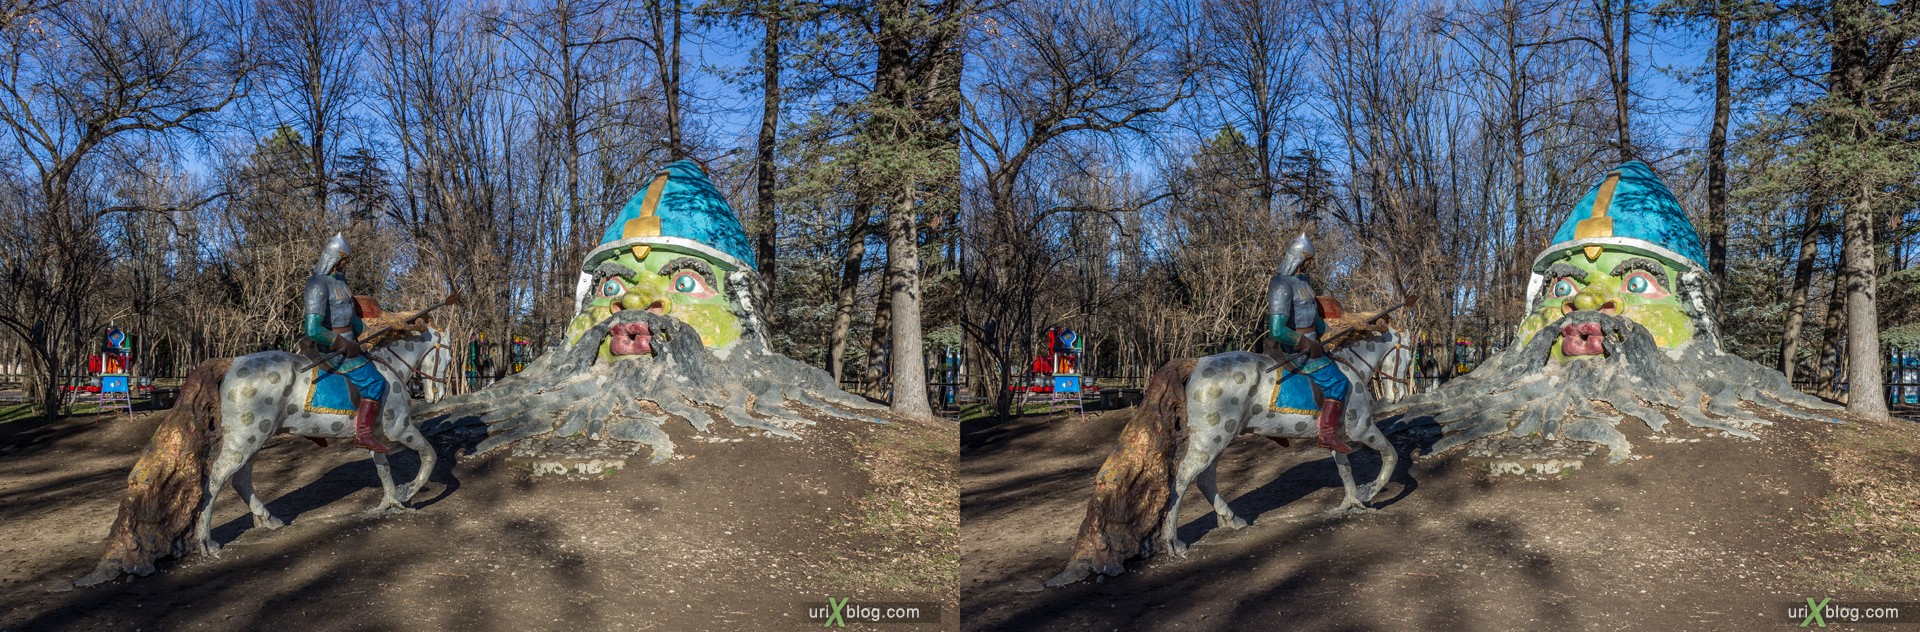 2012, Simferopol, Childrens park, Crimea, Russia, Ukraine, winter, 3D, stereo pair, cross-eyed, crossview, cross view stereo pair, stereoscopic